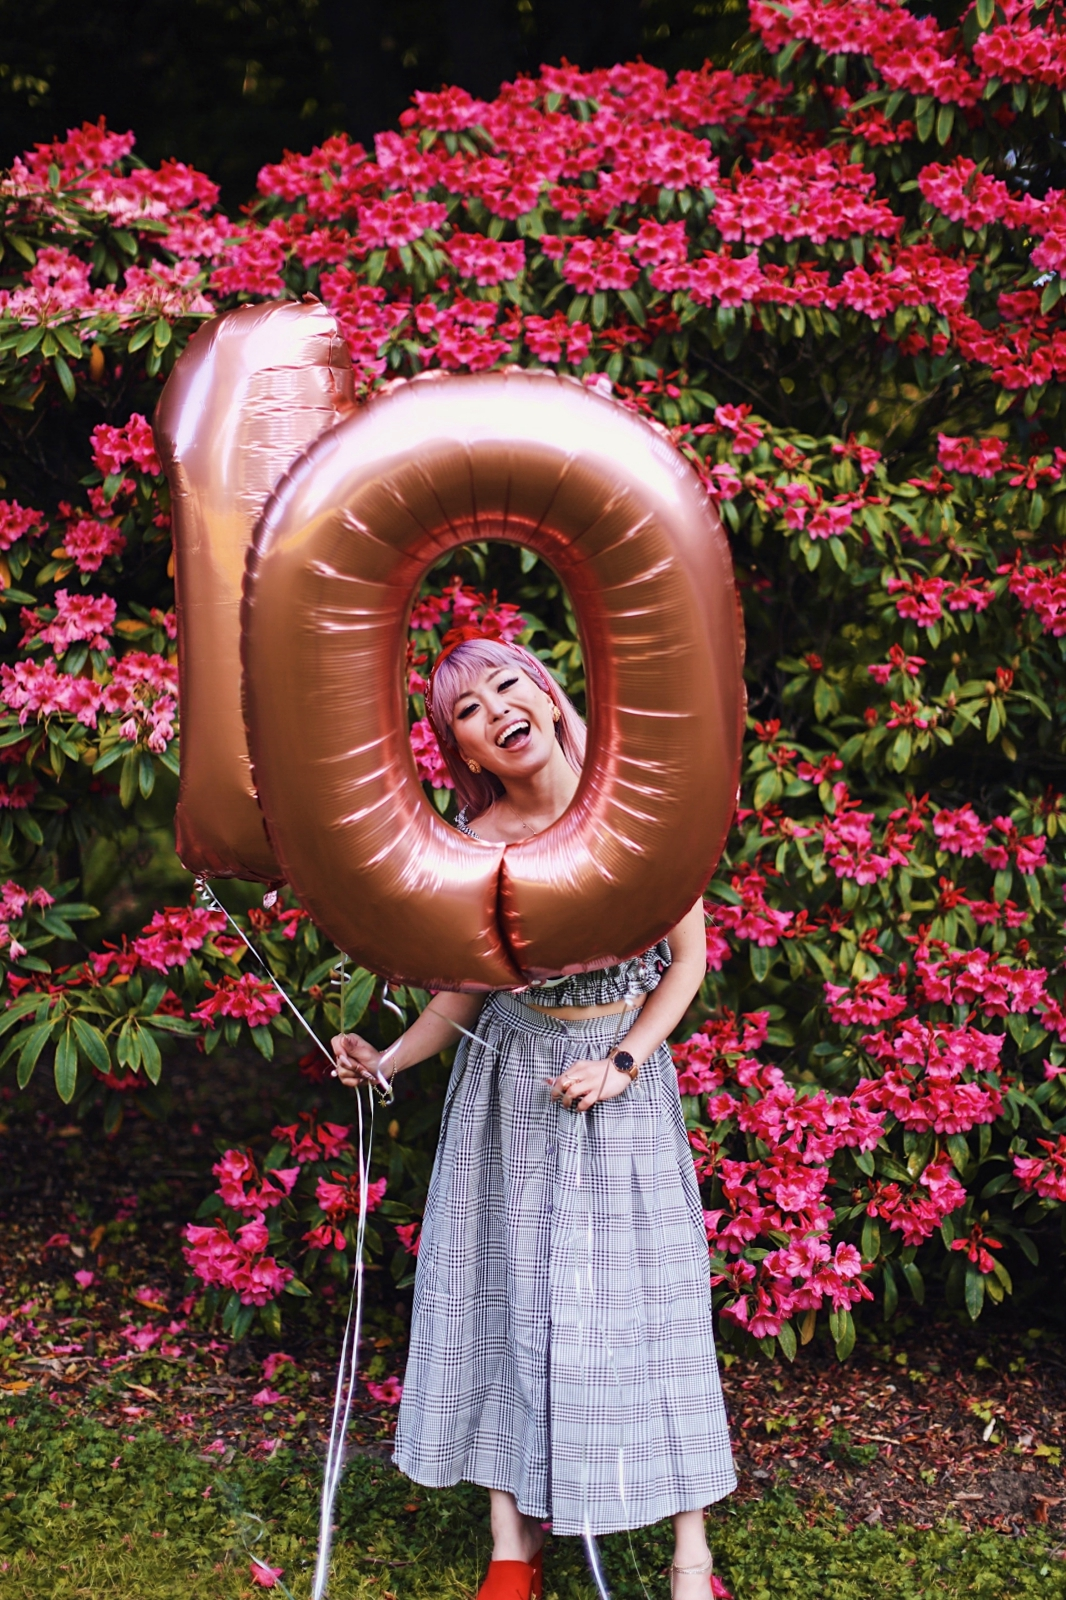 Aika's Love Closet-Seattle Style Life Style Blogger-Japanese-10 Year Anniversary-living in America-what I've learned from Living Abroad-life lessons-pink hair-zero uv heart sunglasses-rose gold balloons-smile 19